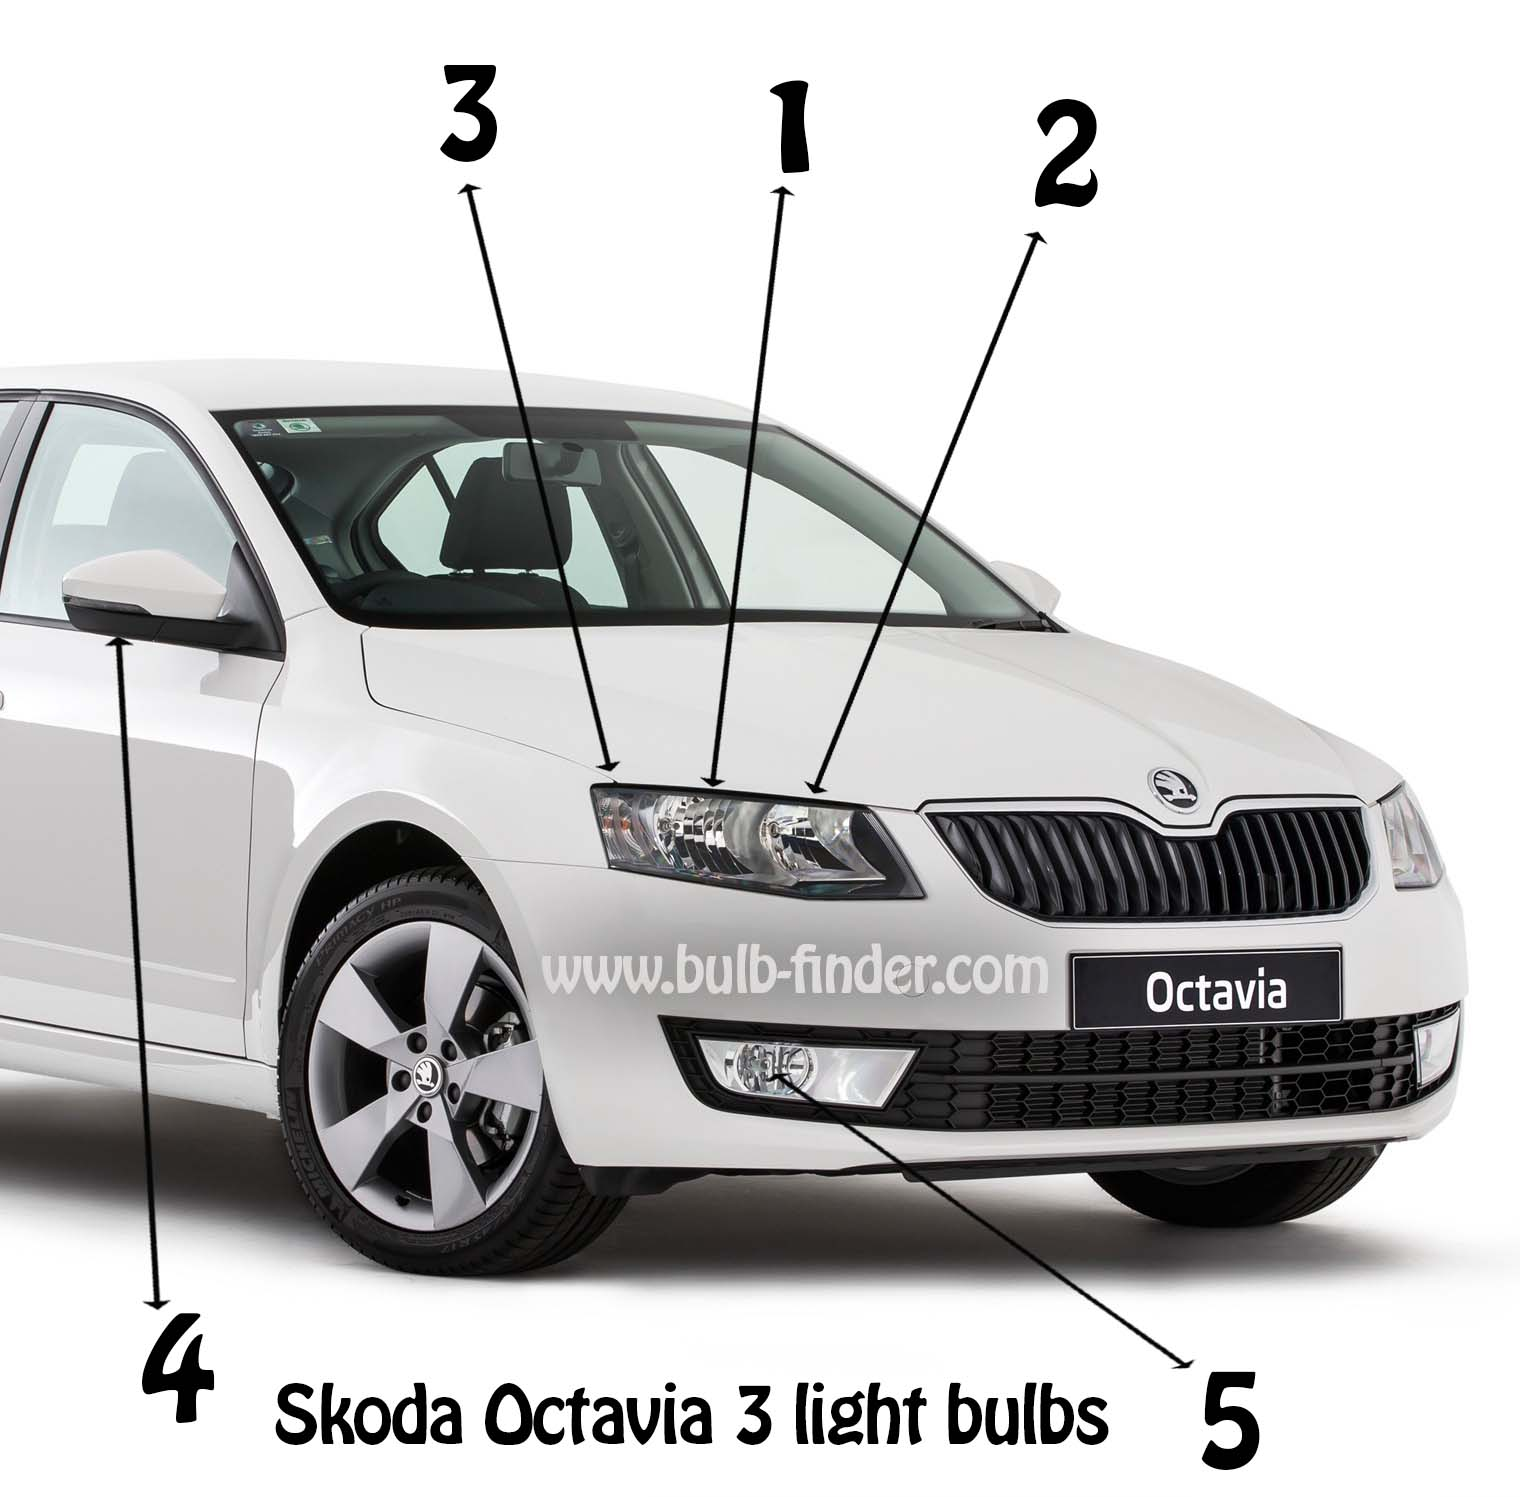 Skoda Octavia 3 Light Bulbs Bulb Finder